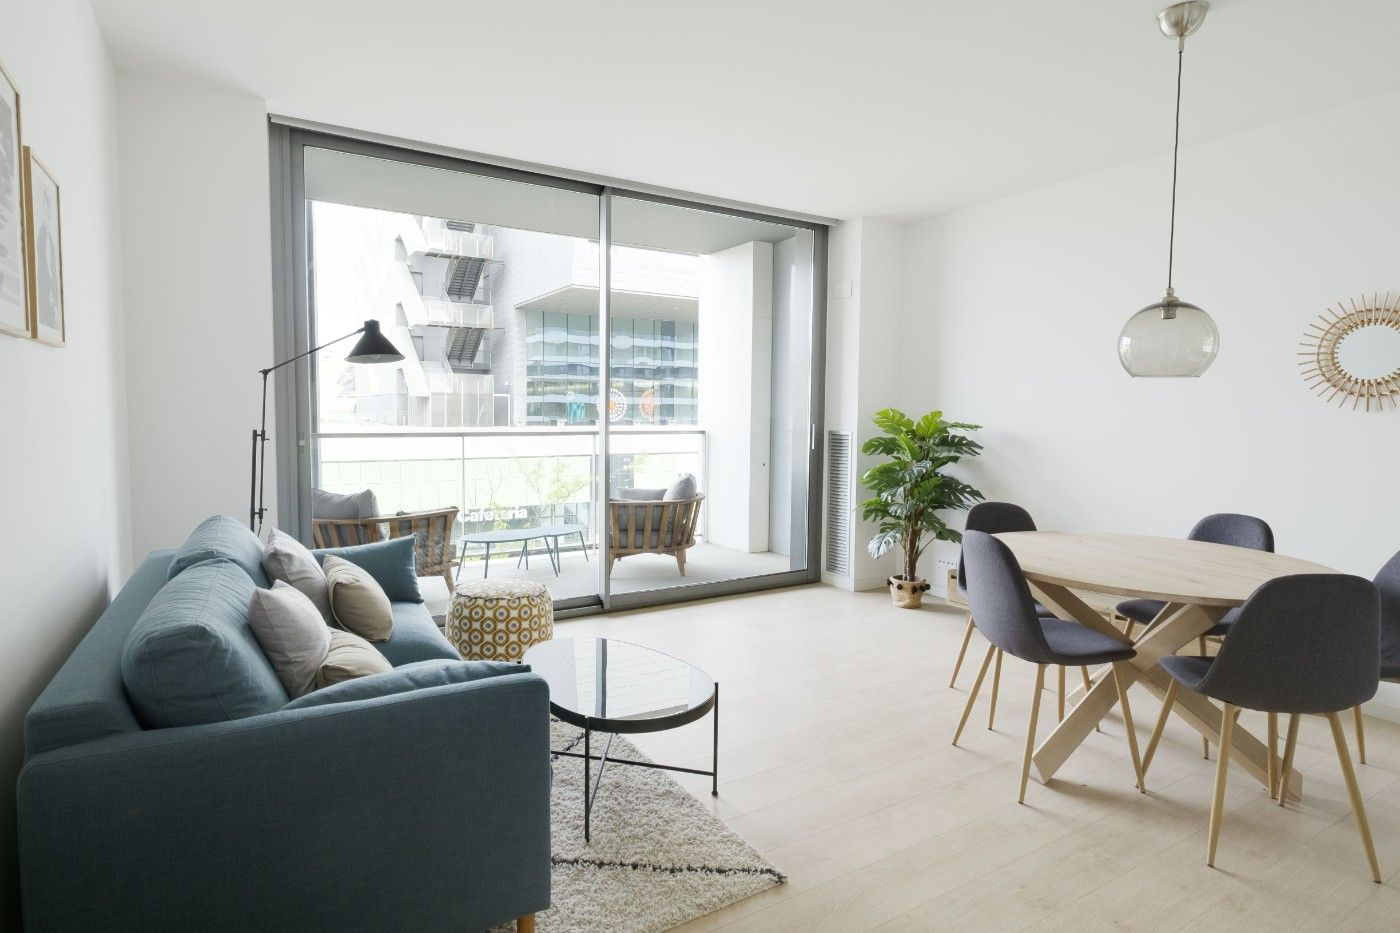 Rent Apartment in Carrer avila, 171. Obra nueva